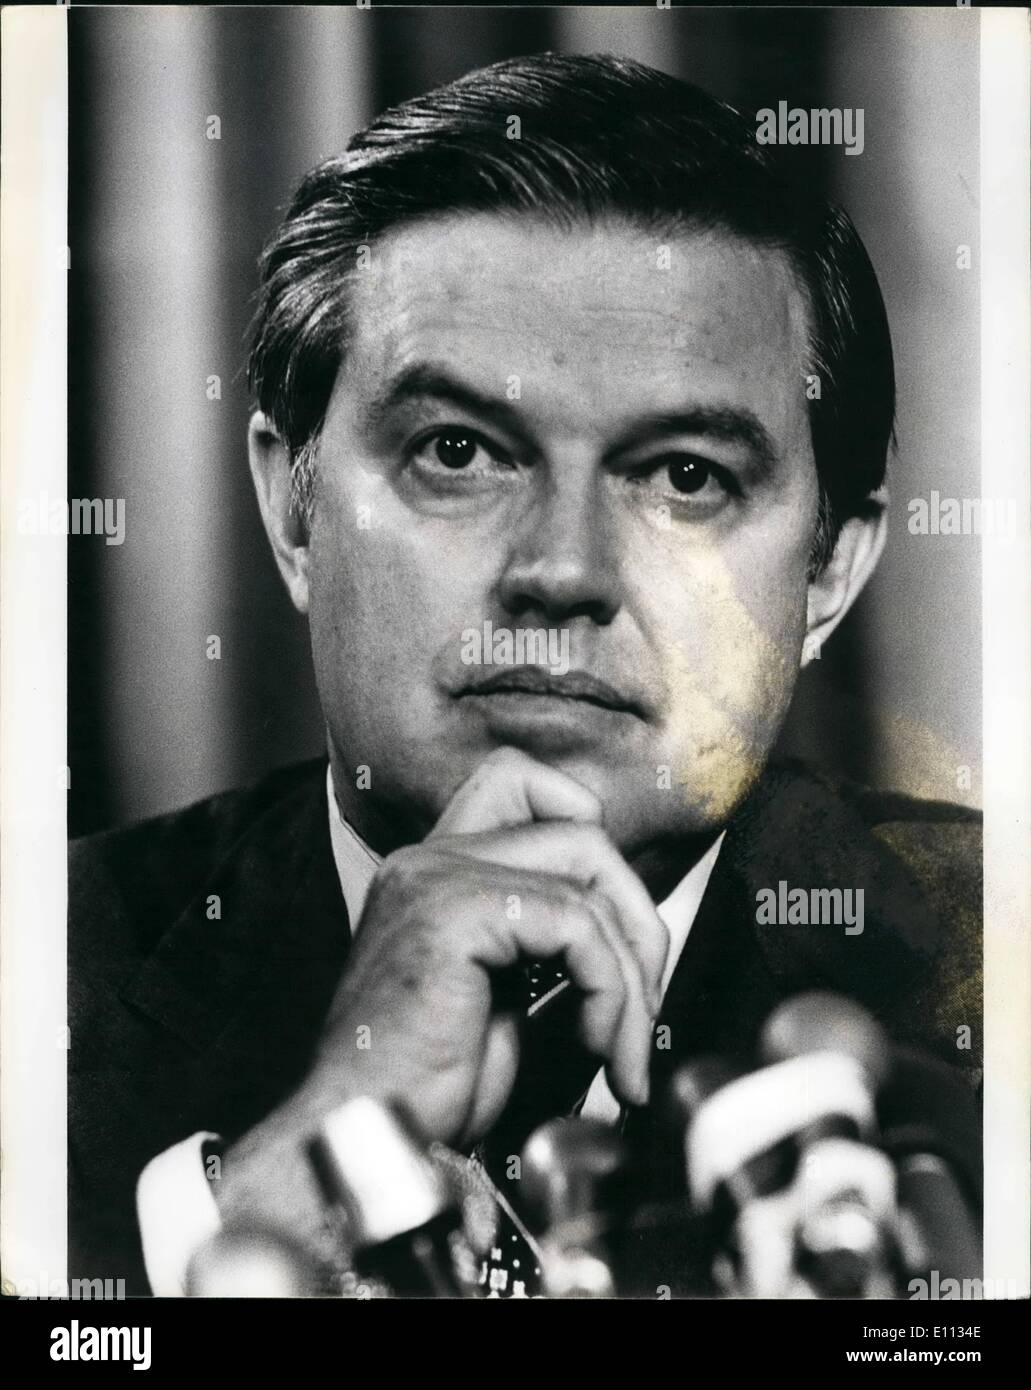 Jun. 06, 1975 - Senator Frank Church (Democrat of Idaho) Chairman of the senate special committee on intelligence which is investigating Internal spying carried out by the Central Intelligence agency and also alleged assasination plots Picture taken at News-conference held by Senator Church to criticize the rockefller commission report on the C.I.A. - Stock Image